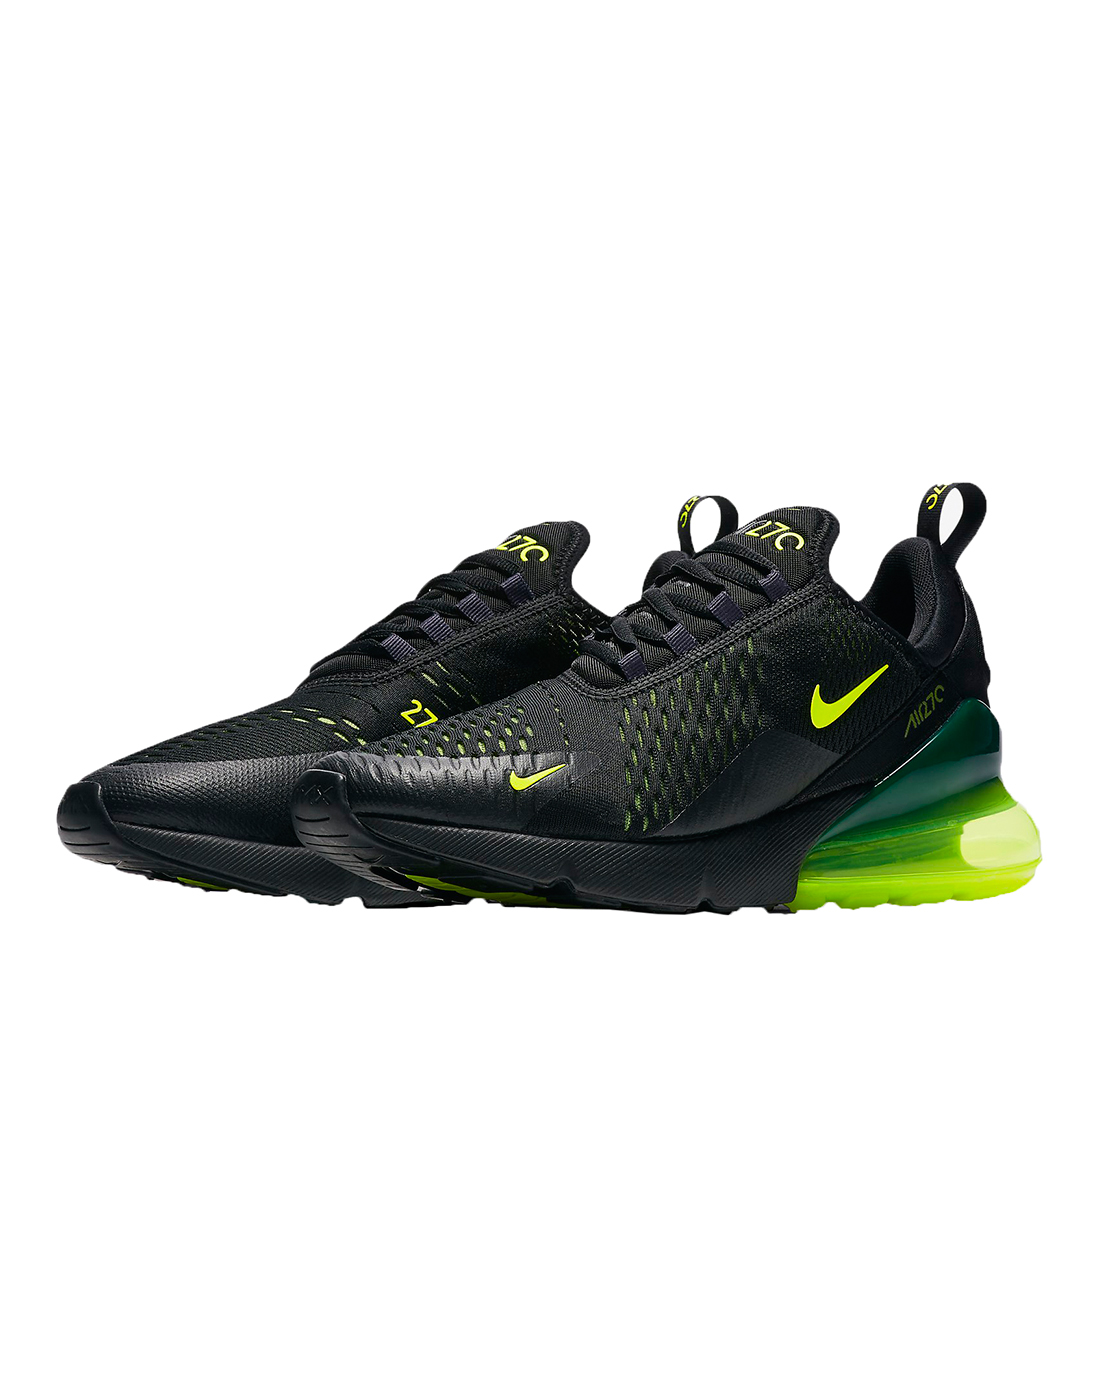 98d3dd0ee Men's Black & Neon Green Nike Air Max 270 | Life Style Sports